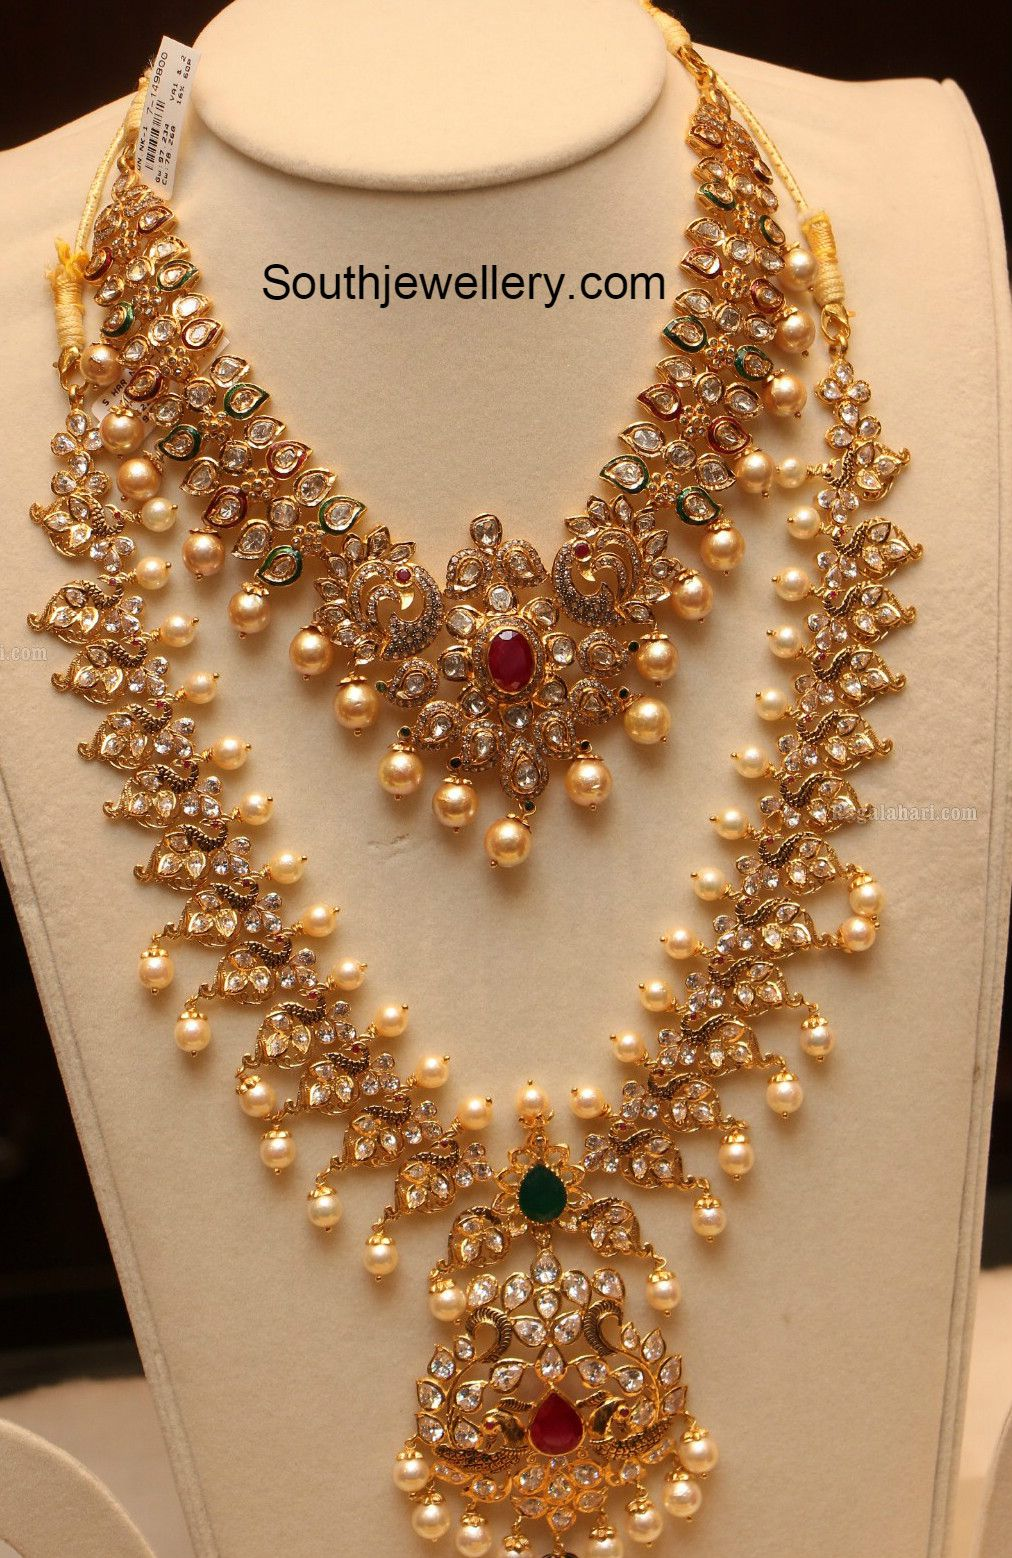 Peacock pacchi necklace and haram jewellery designs gold jewels